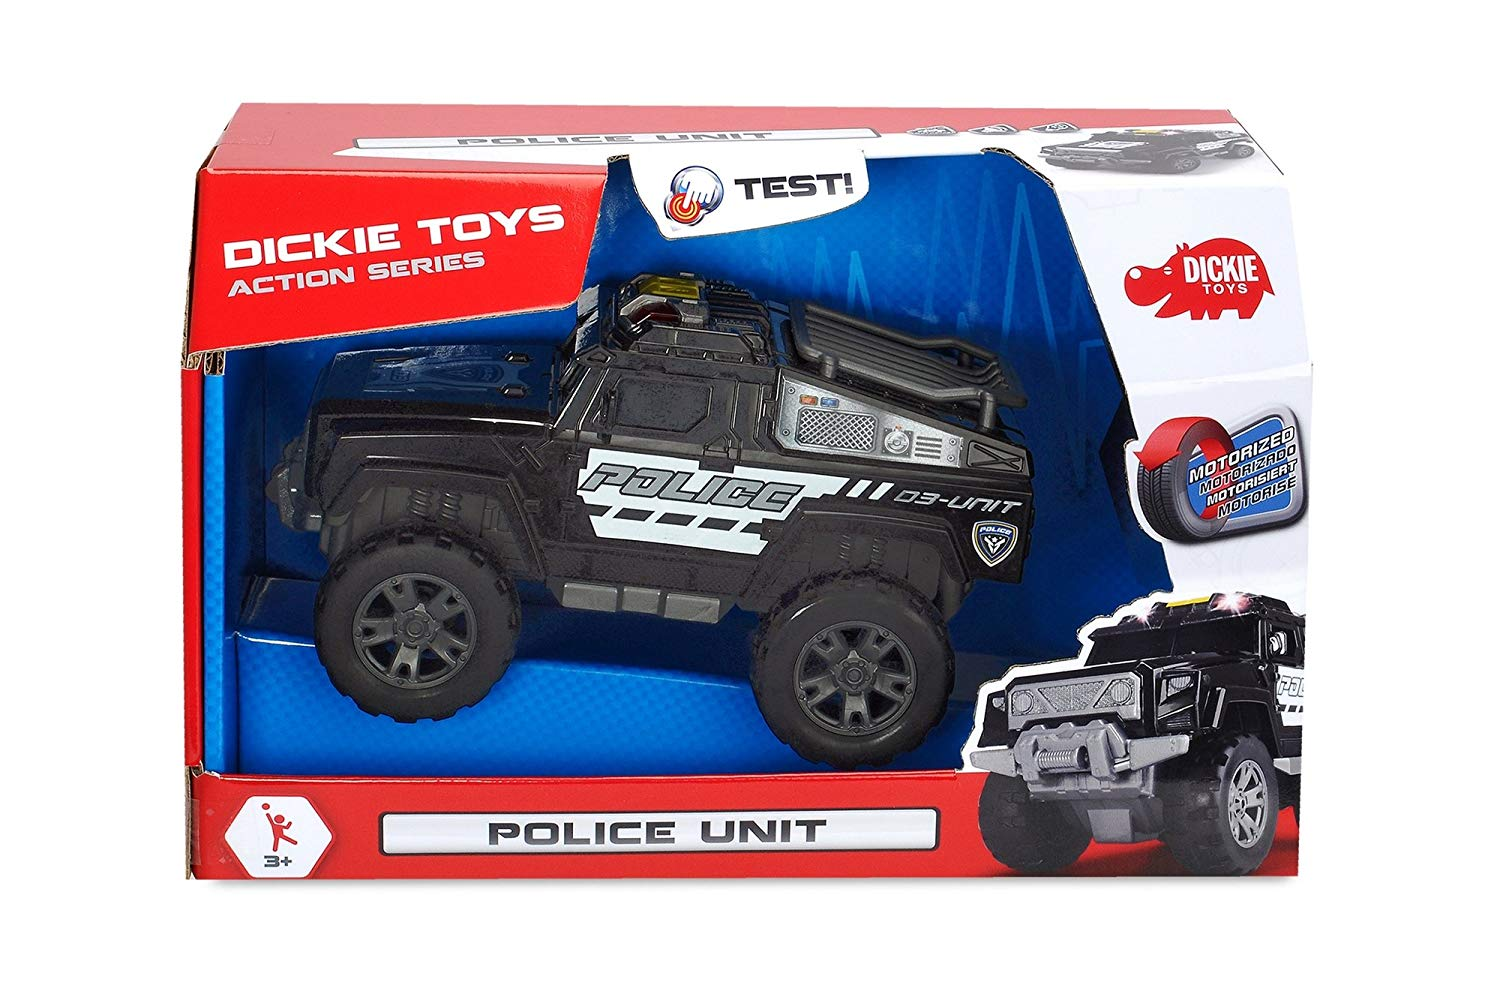 Masinuta de politie Dickie Toys Police Unit imagine